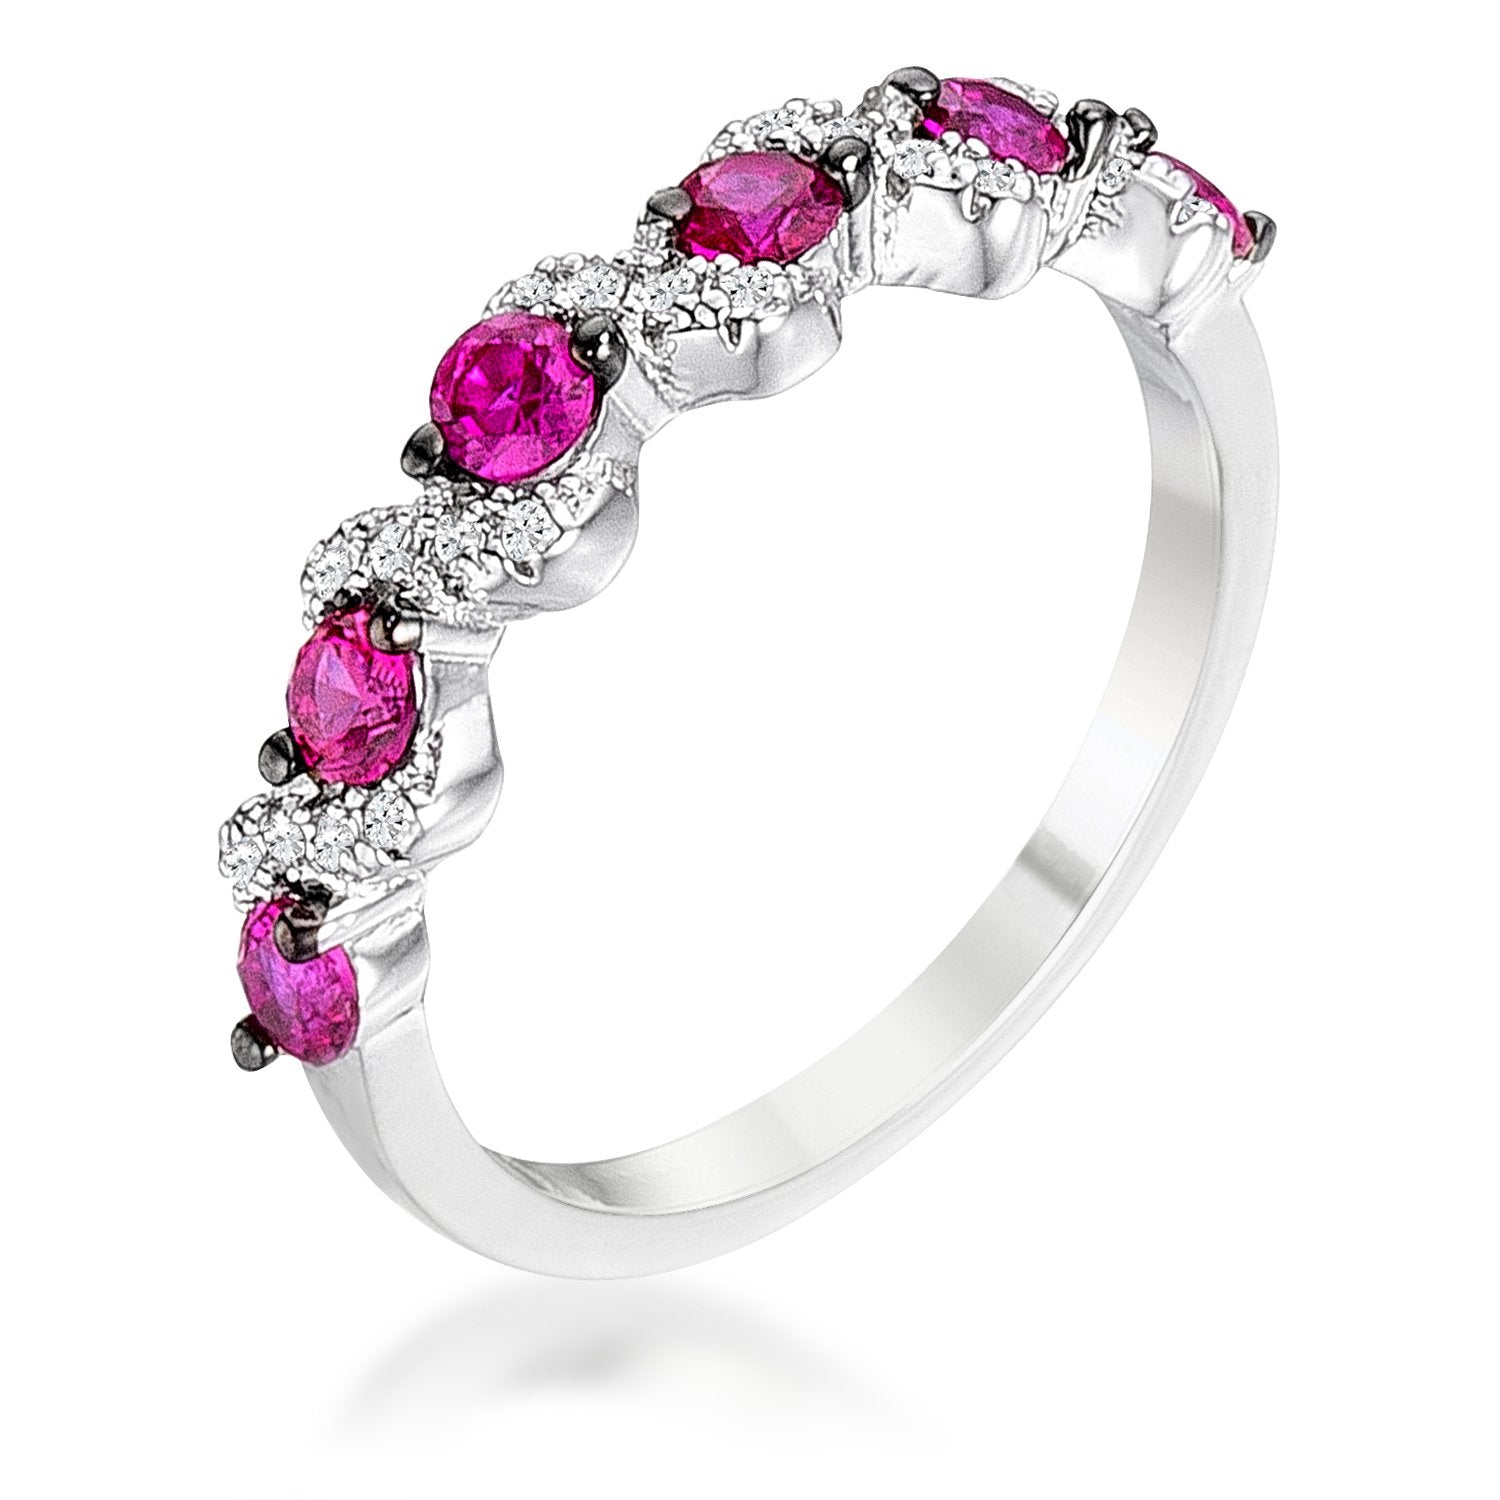 Fuchsia and Clear Half Eternity Band - Opulent Lifestyle